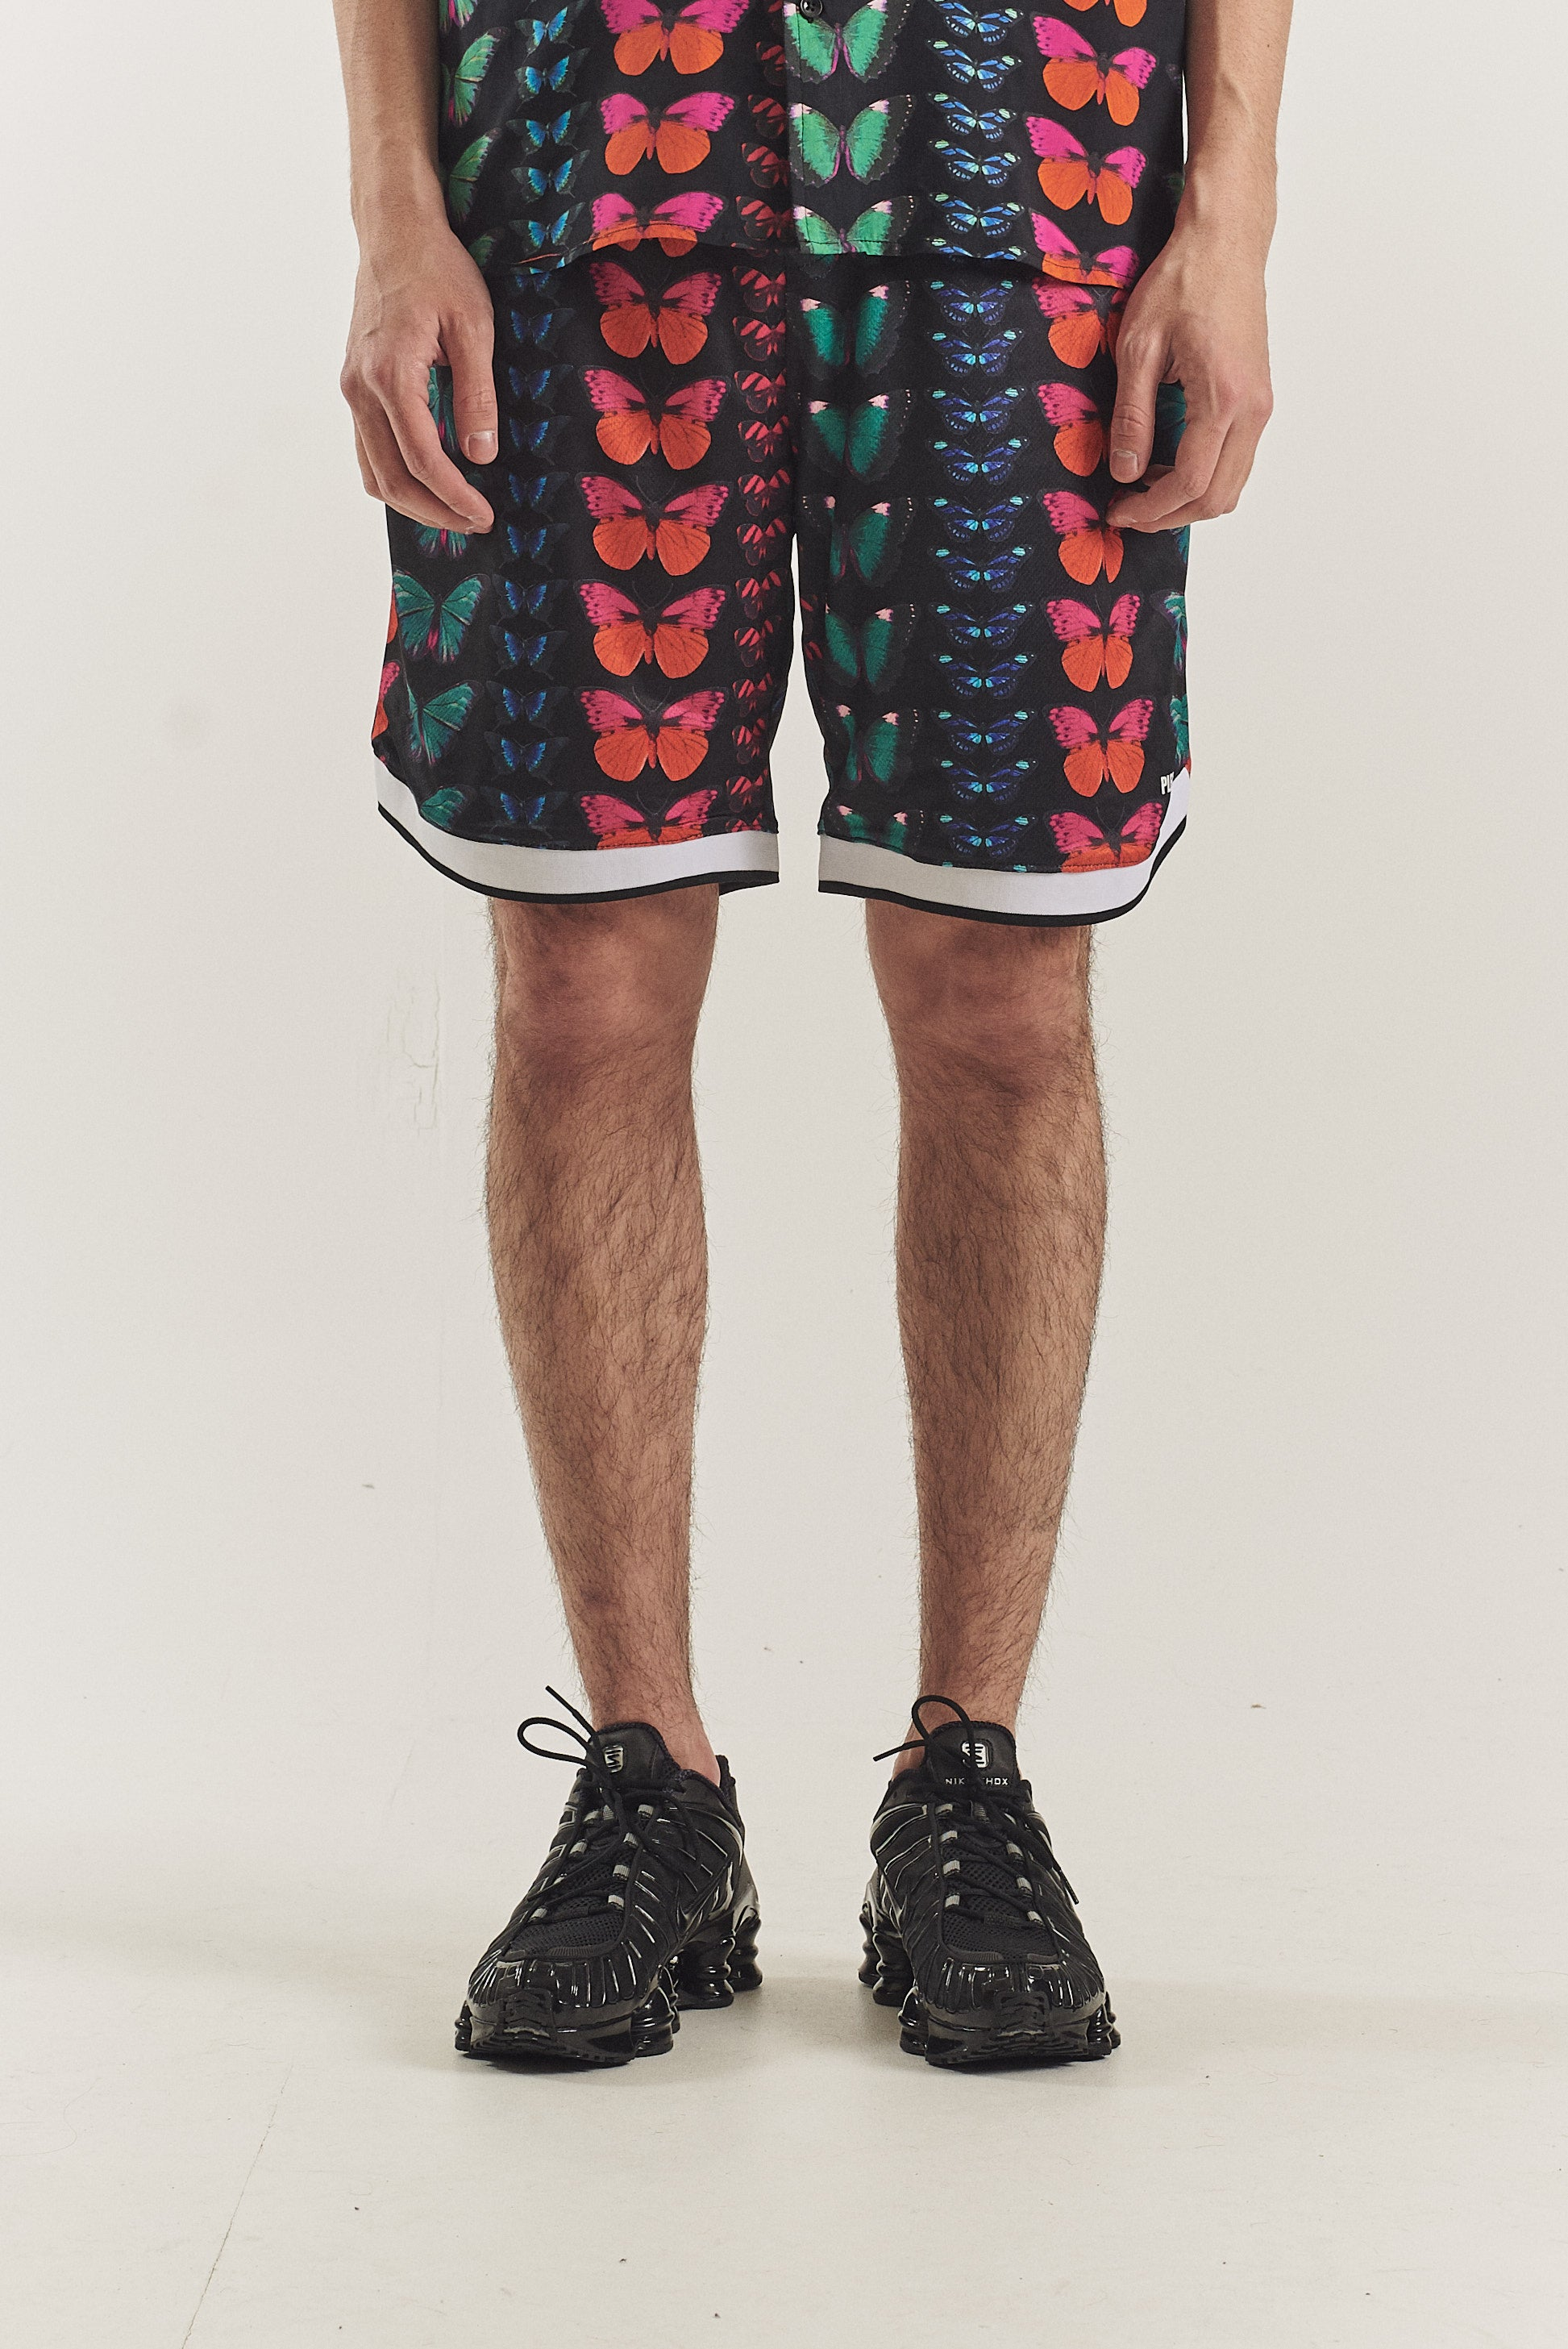 Butterfly basketball shorts